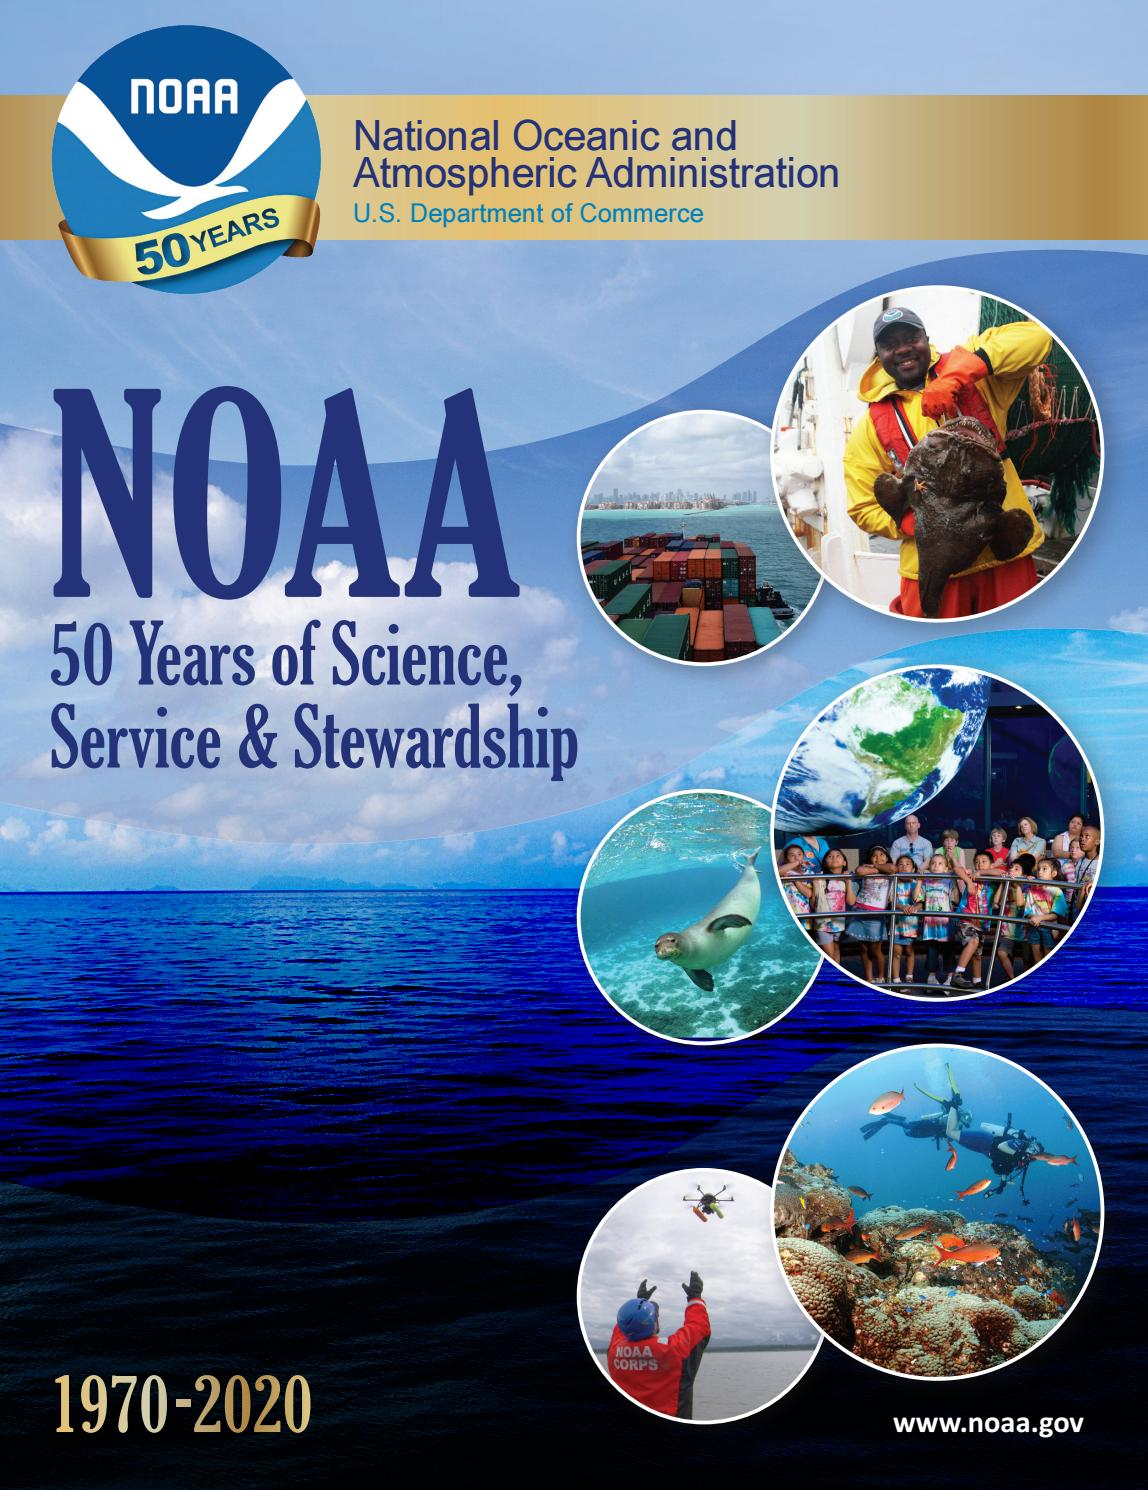 Noaa national ocean service education corals betting rochdale manager betting